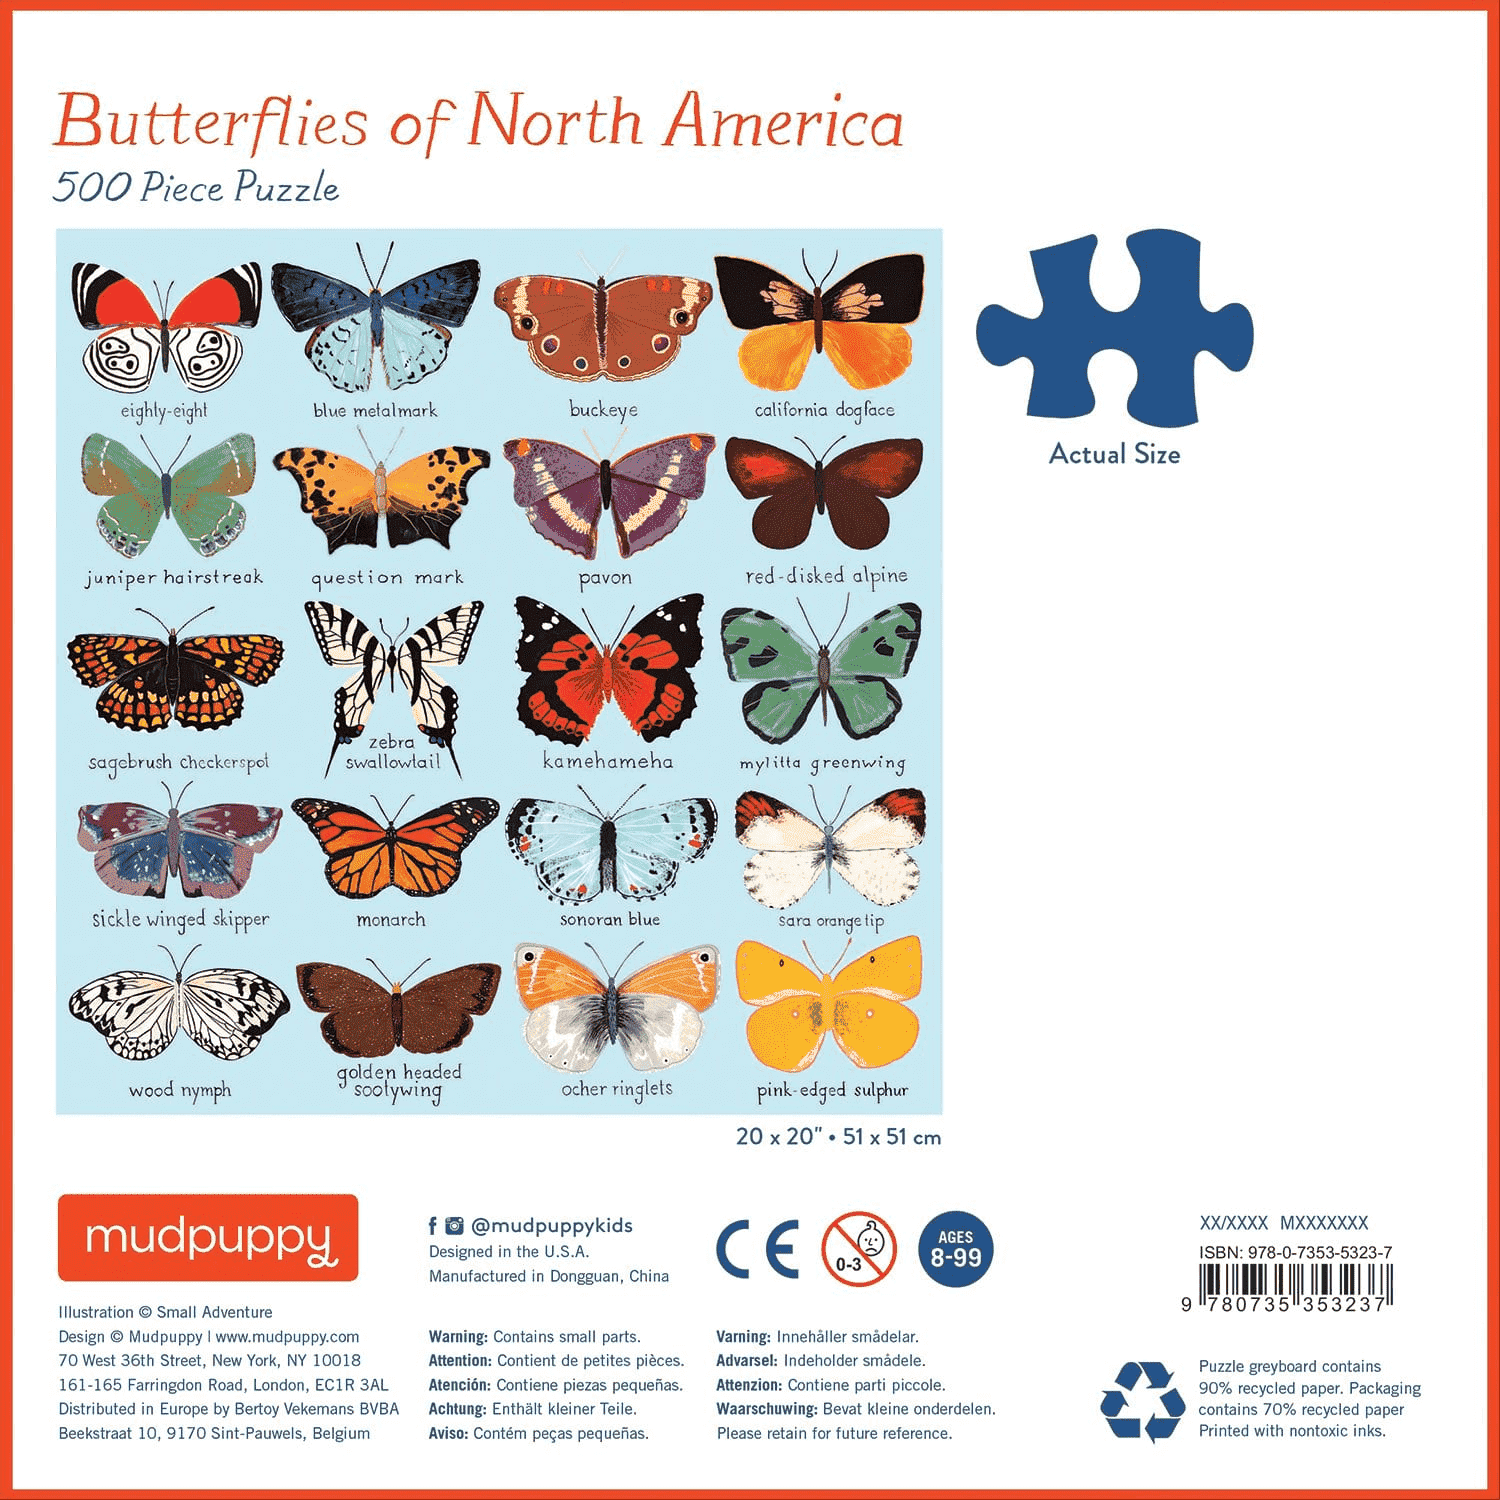 Butterflies Of North America 500 Piece Family Puzzle | Mudpuppy